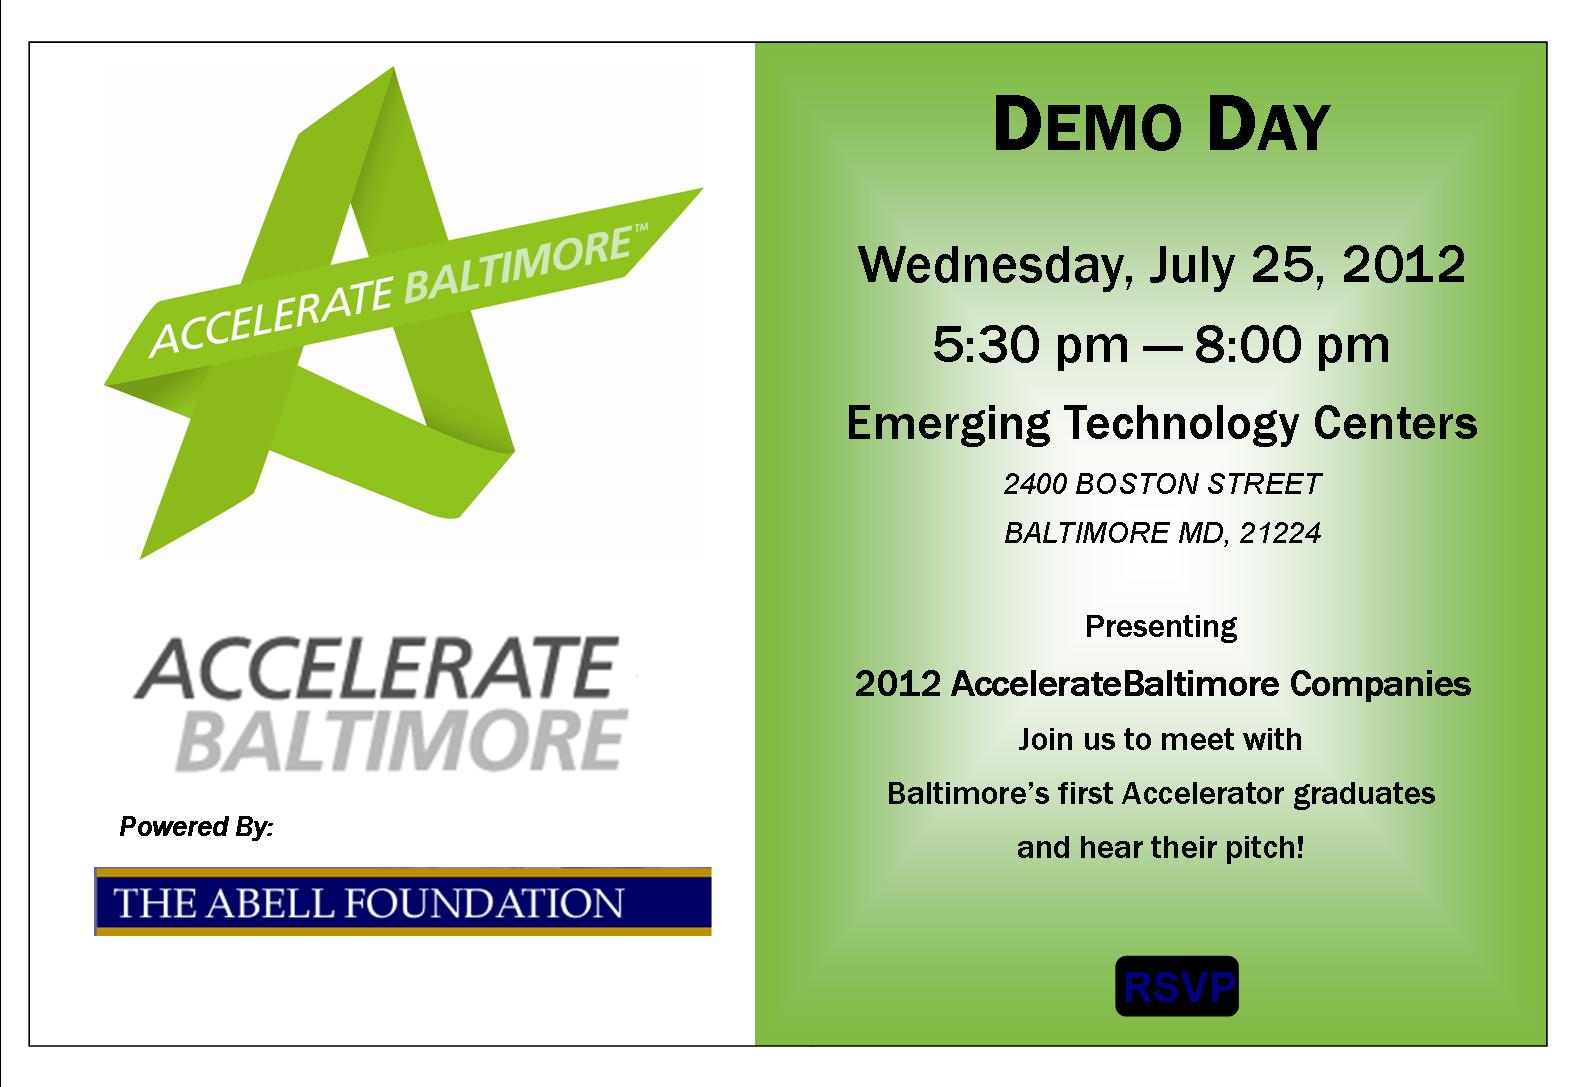 Demo Day invitation